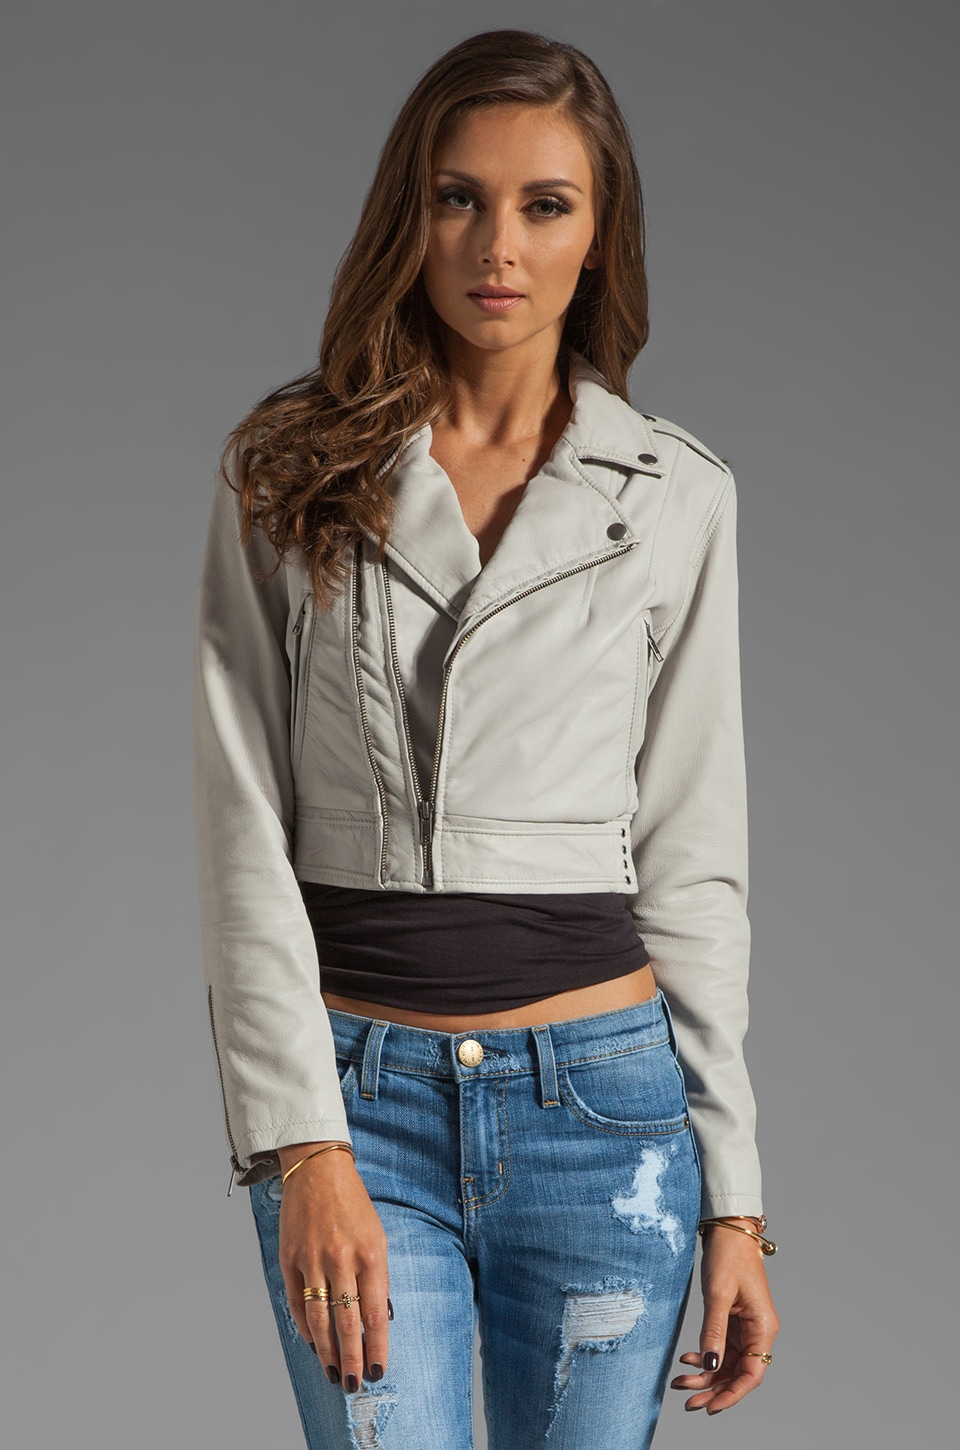 Joie Dolores B Paper Leather Jacket in Pale Grey